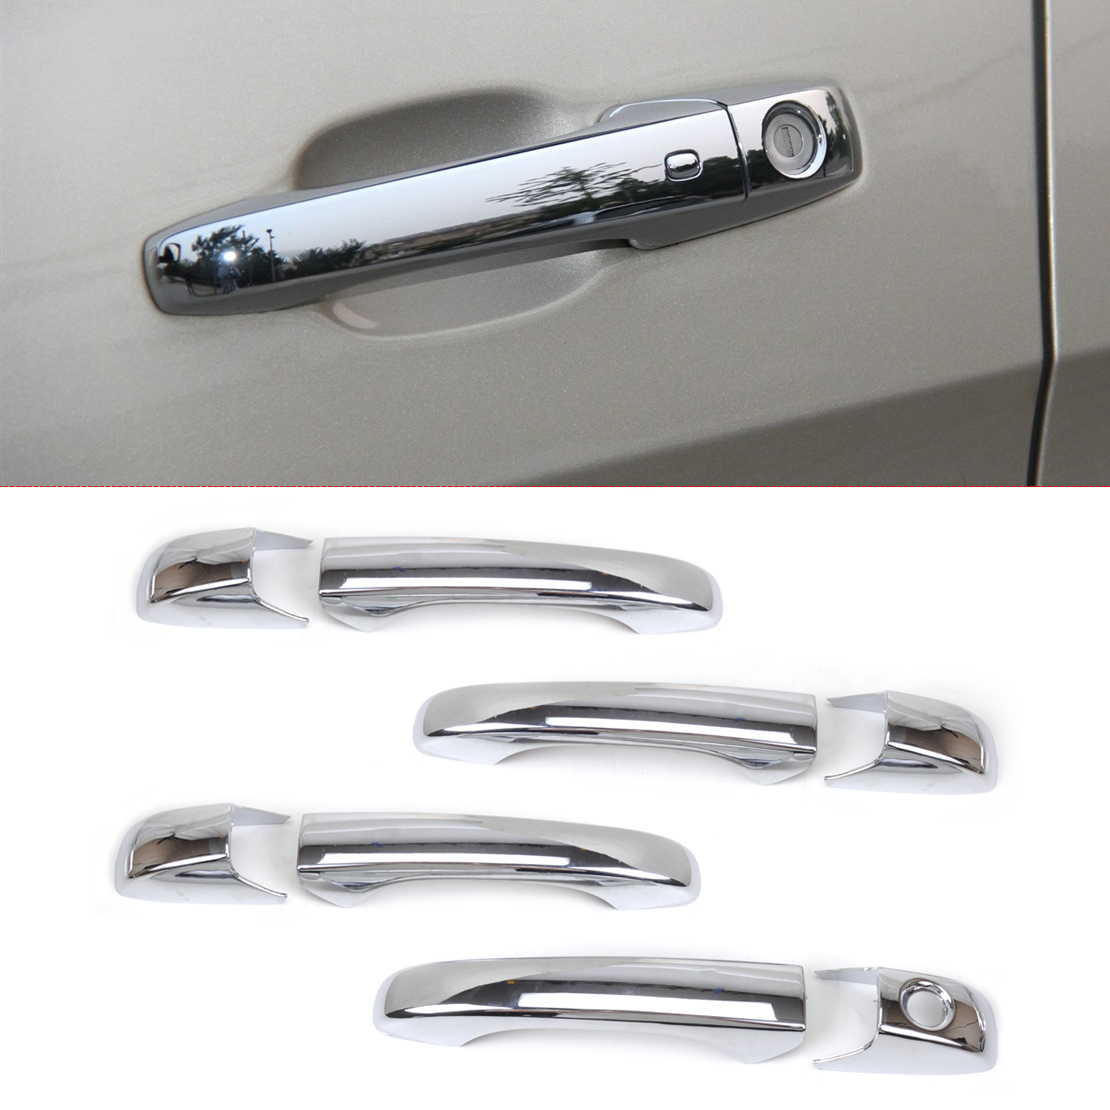 New Chrome Door Handle Cover Trim for Dodge <font><b>Grand</b></font> Caravan Chrysler Town & Country 300/300C <font><b>Jeep</b></font> <font><b>Grand</b></font> Cherokee Compass